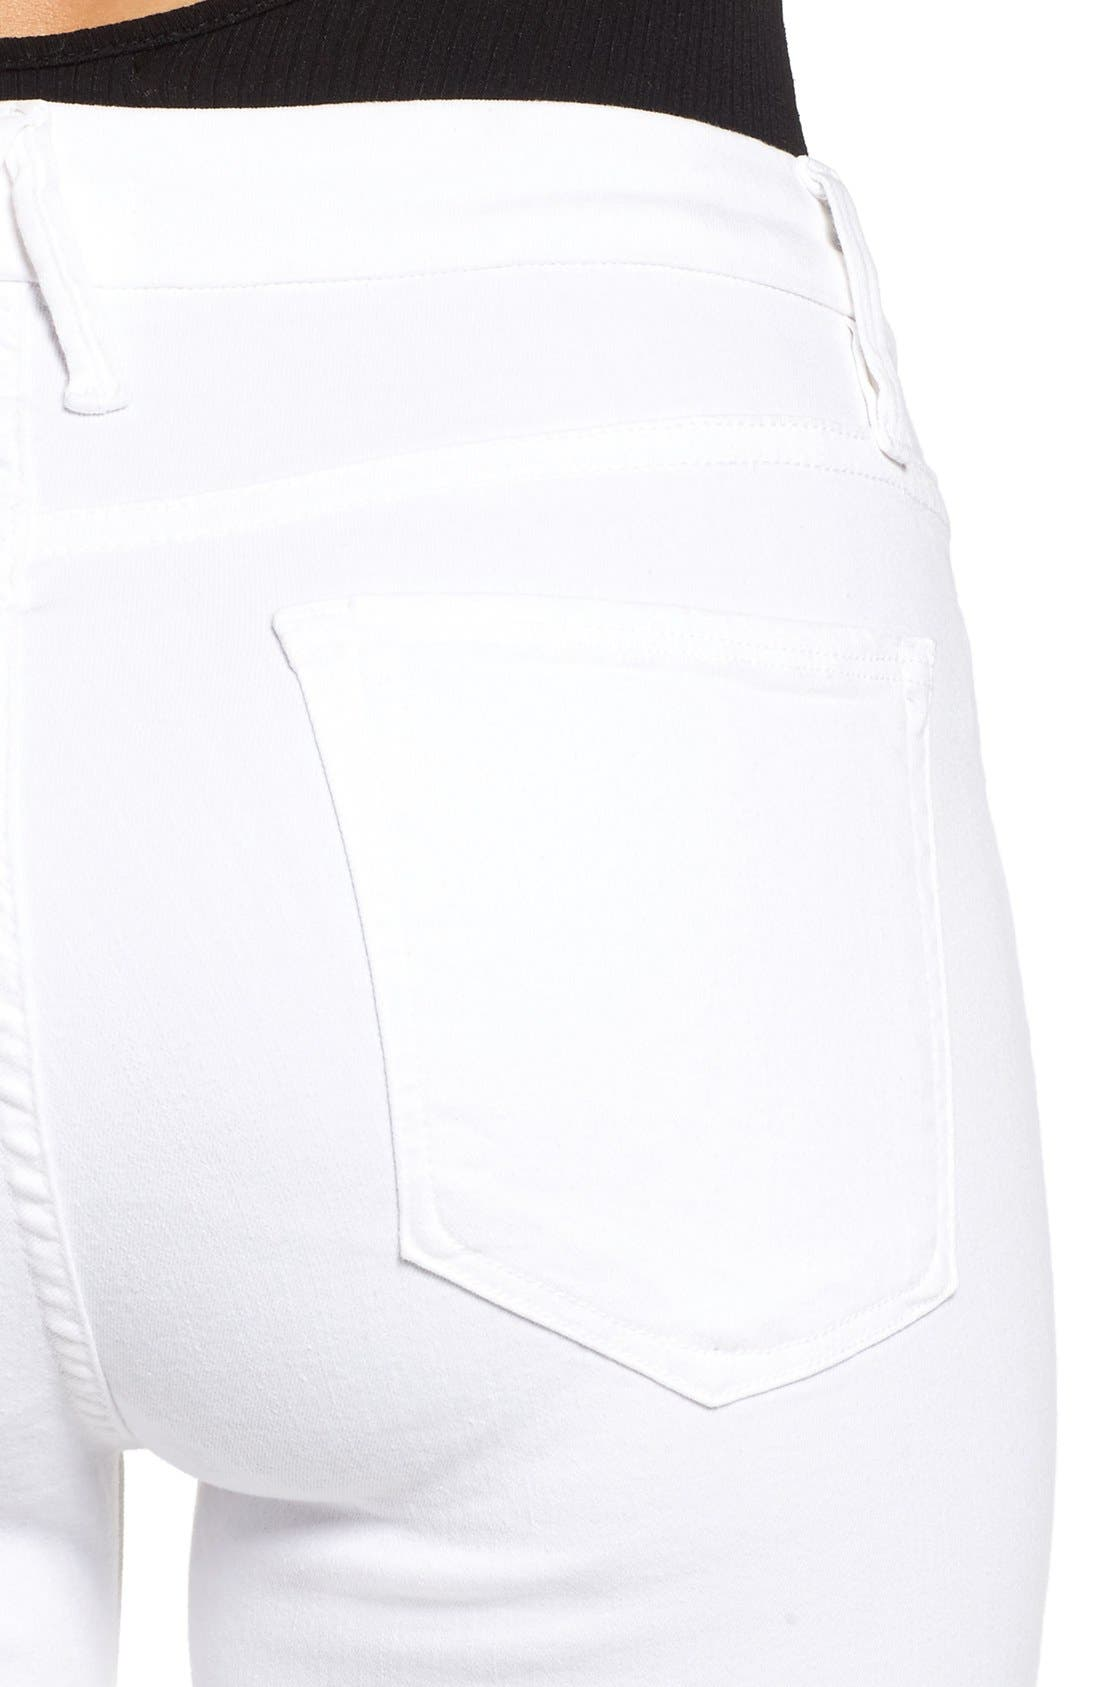 Alternate Image 4  - Good American Good Legs High Rise Skinny Jeans (White 001) (Extended Sizes)